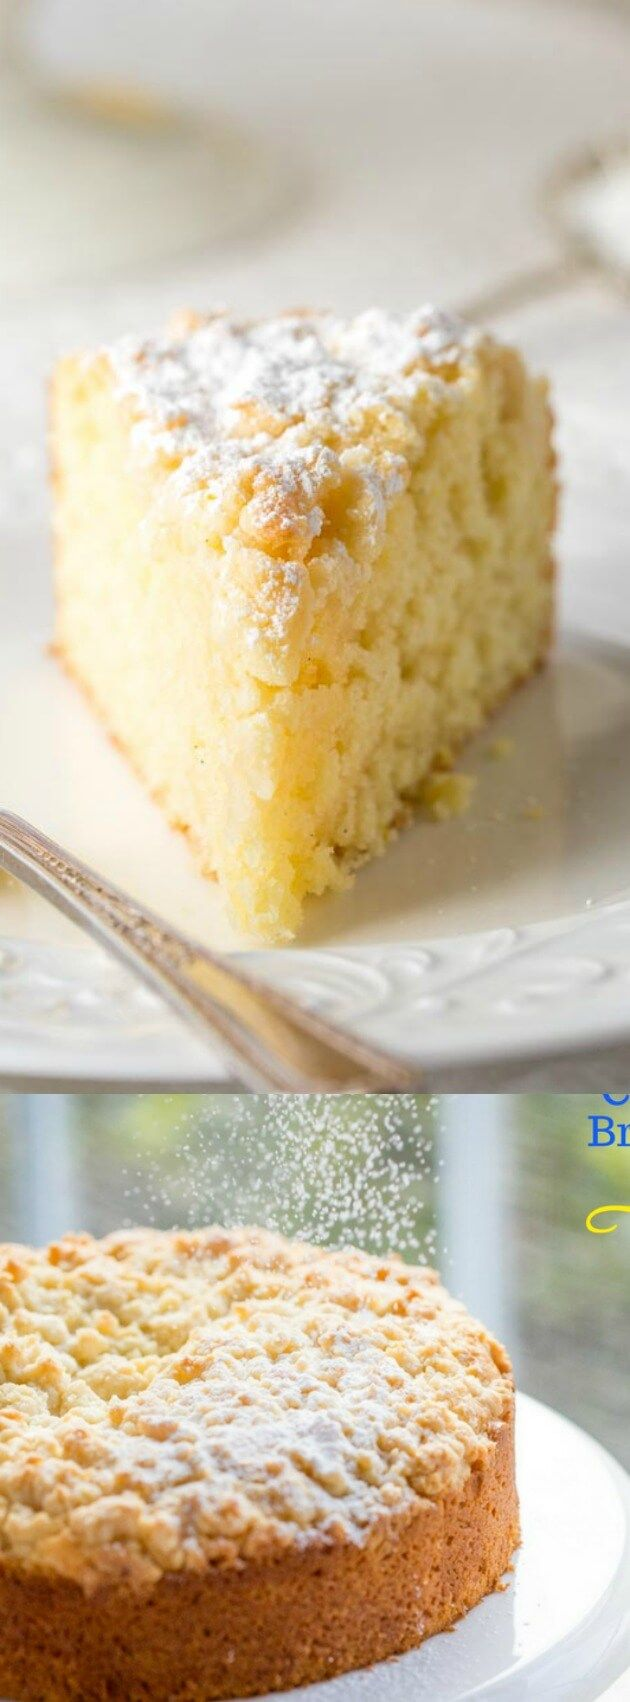 This Lemon Crumble Breakfast Cake from Saving Room for Dessert is loaded with bright lemon flavor! The moist tender cake is super easy to make and topped with the sweetest crumble topping!